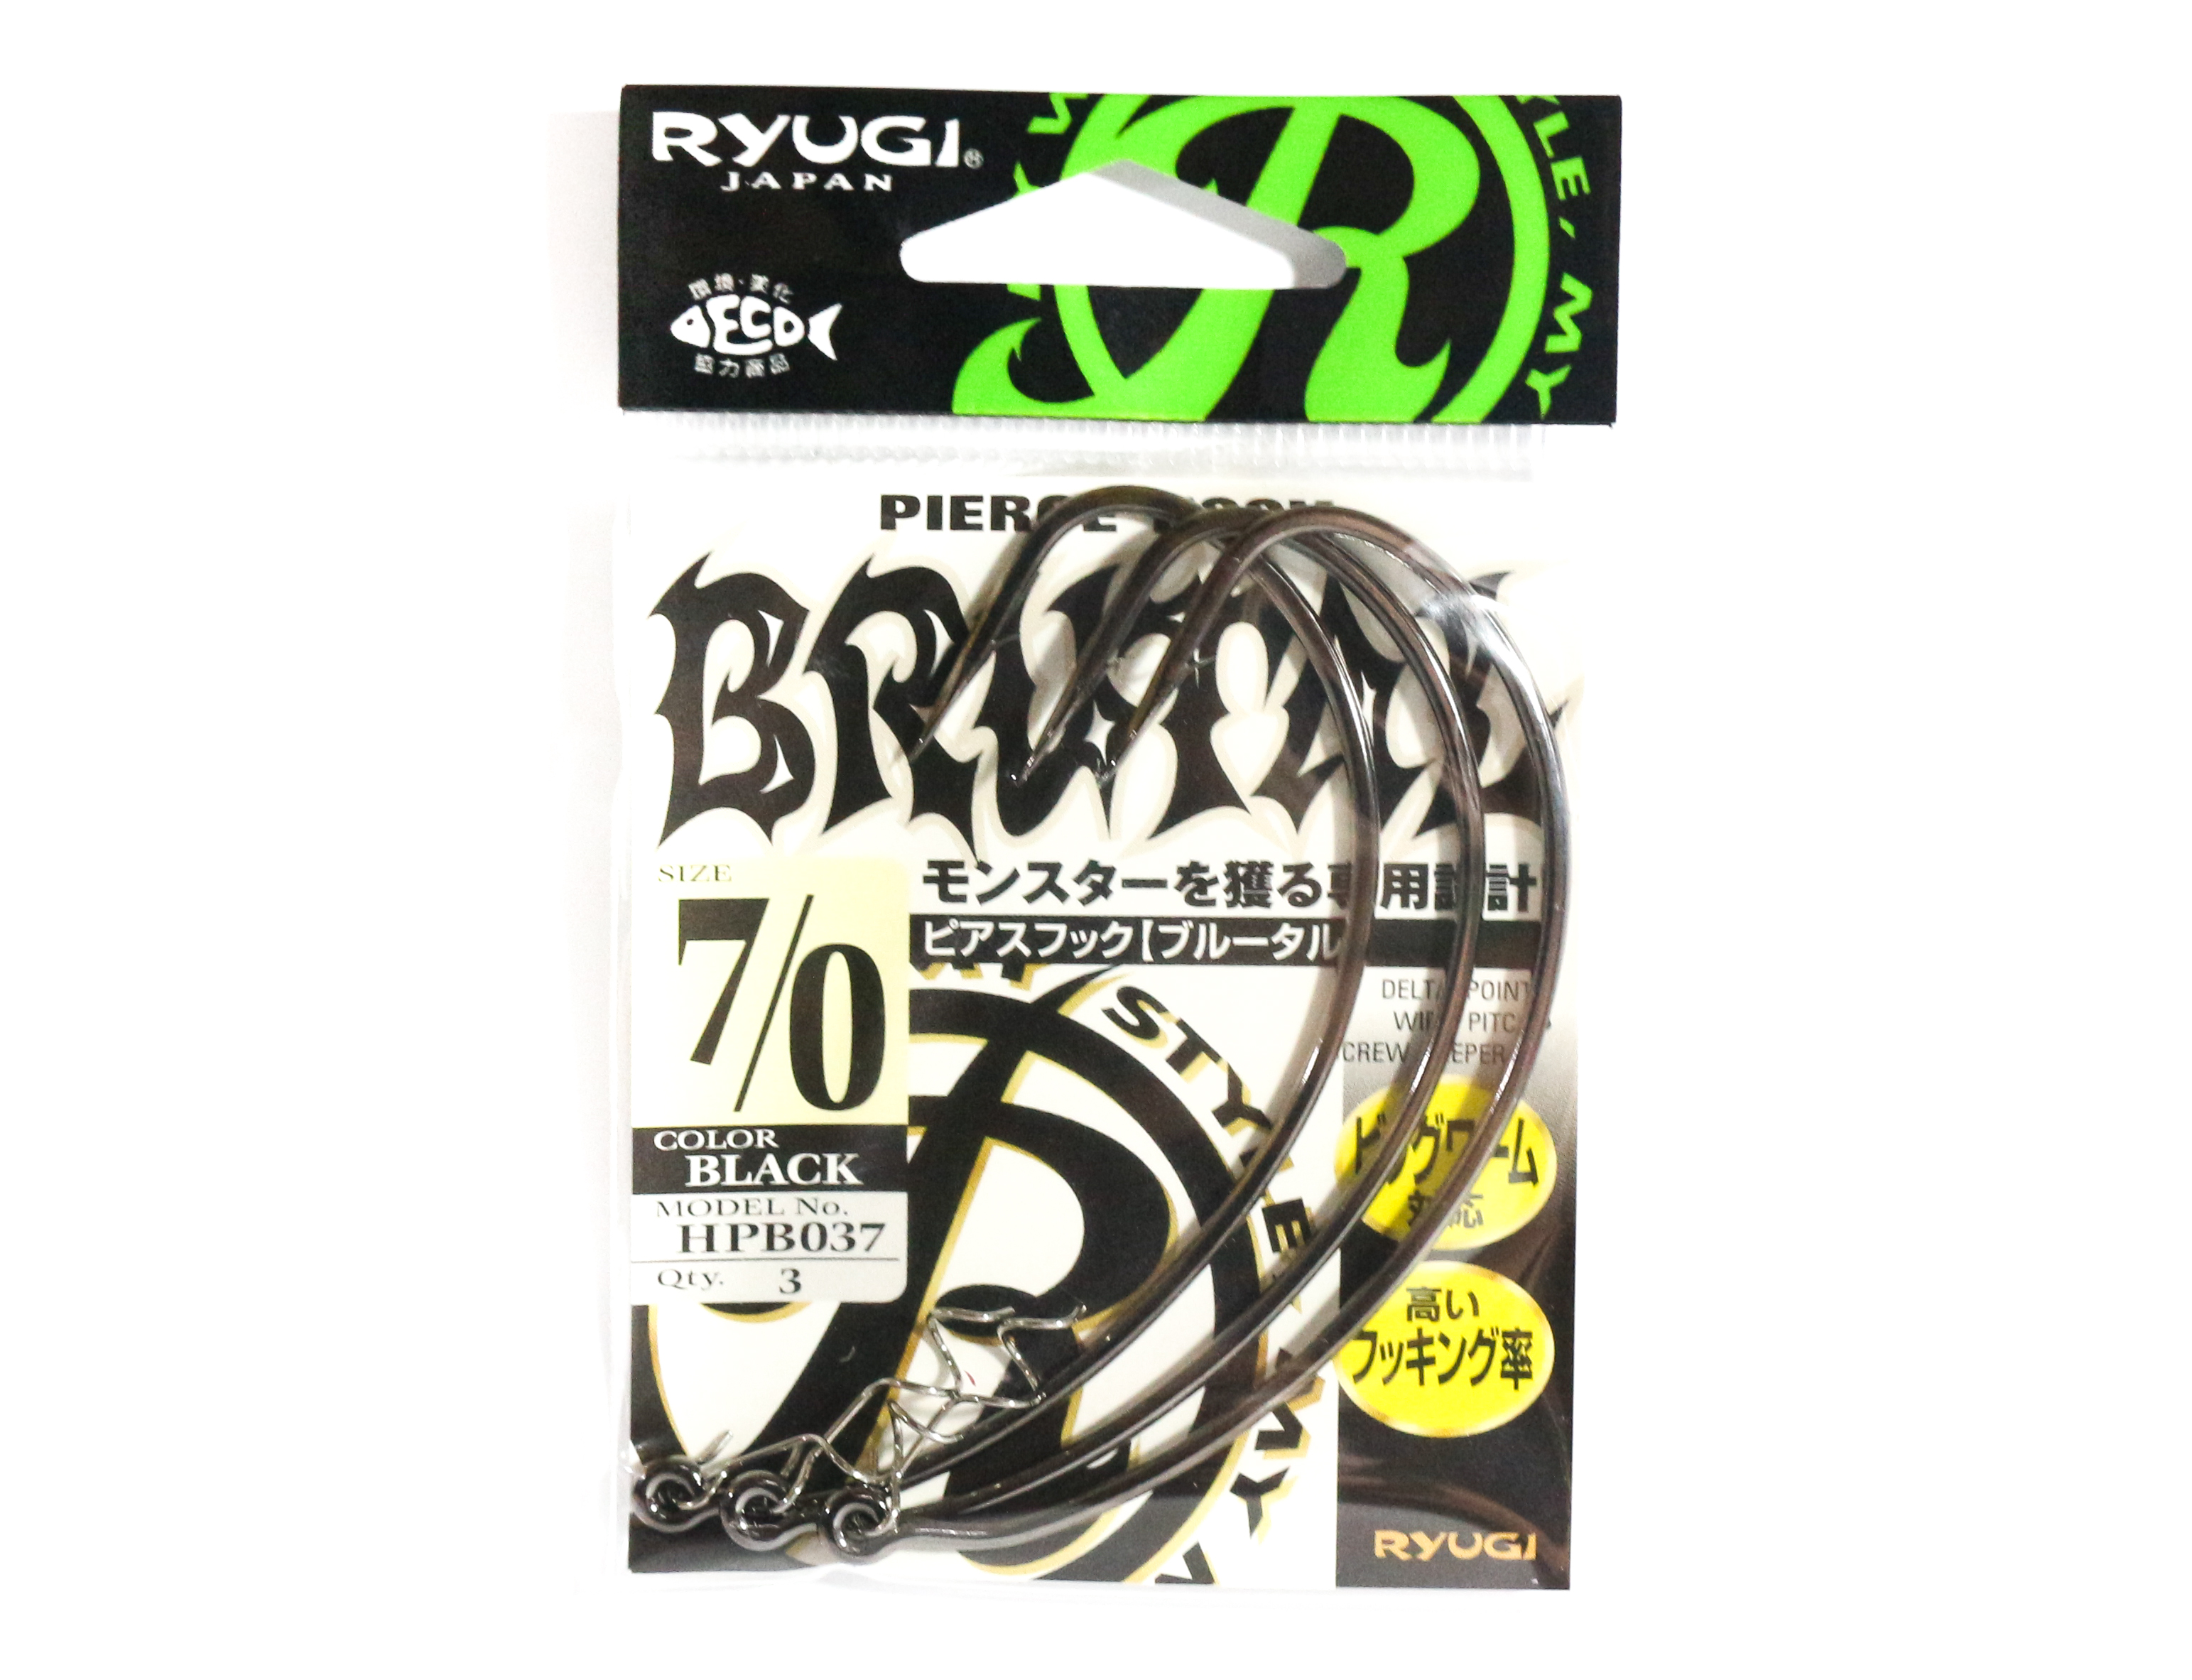 Ryugi HPB037 Pierce Brutal Hook Size 7/0 (7835)